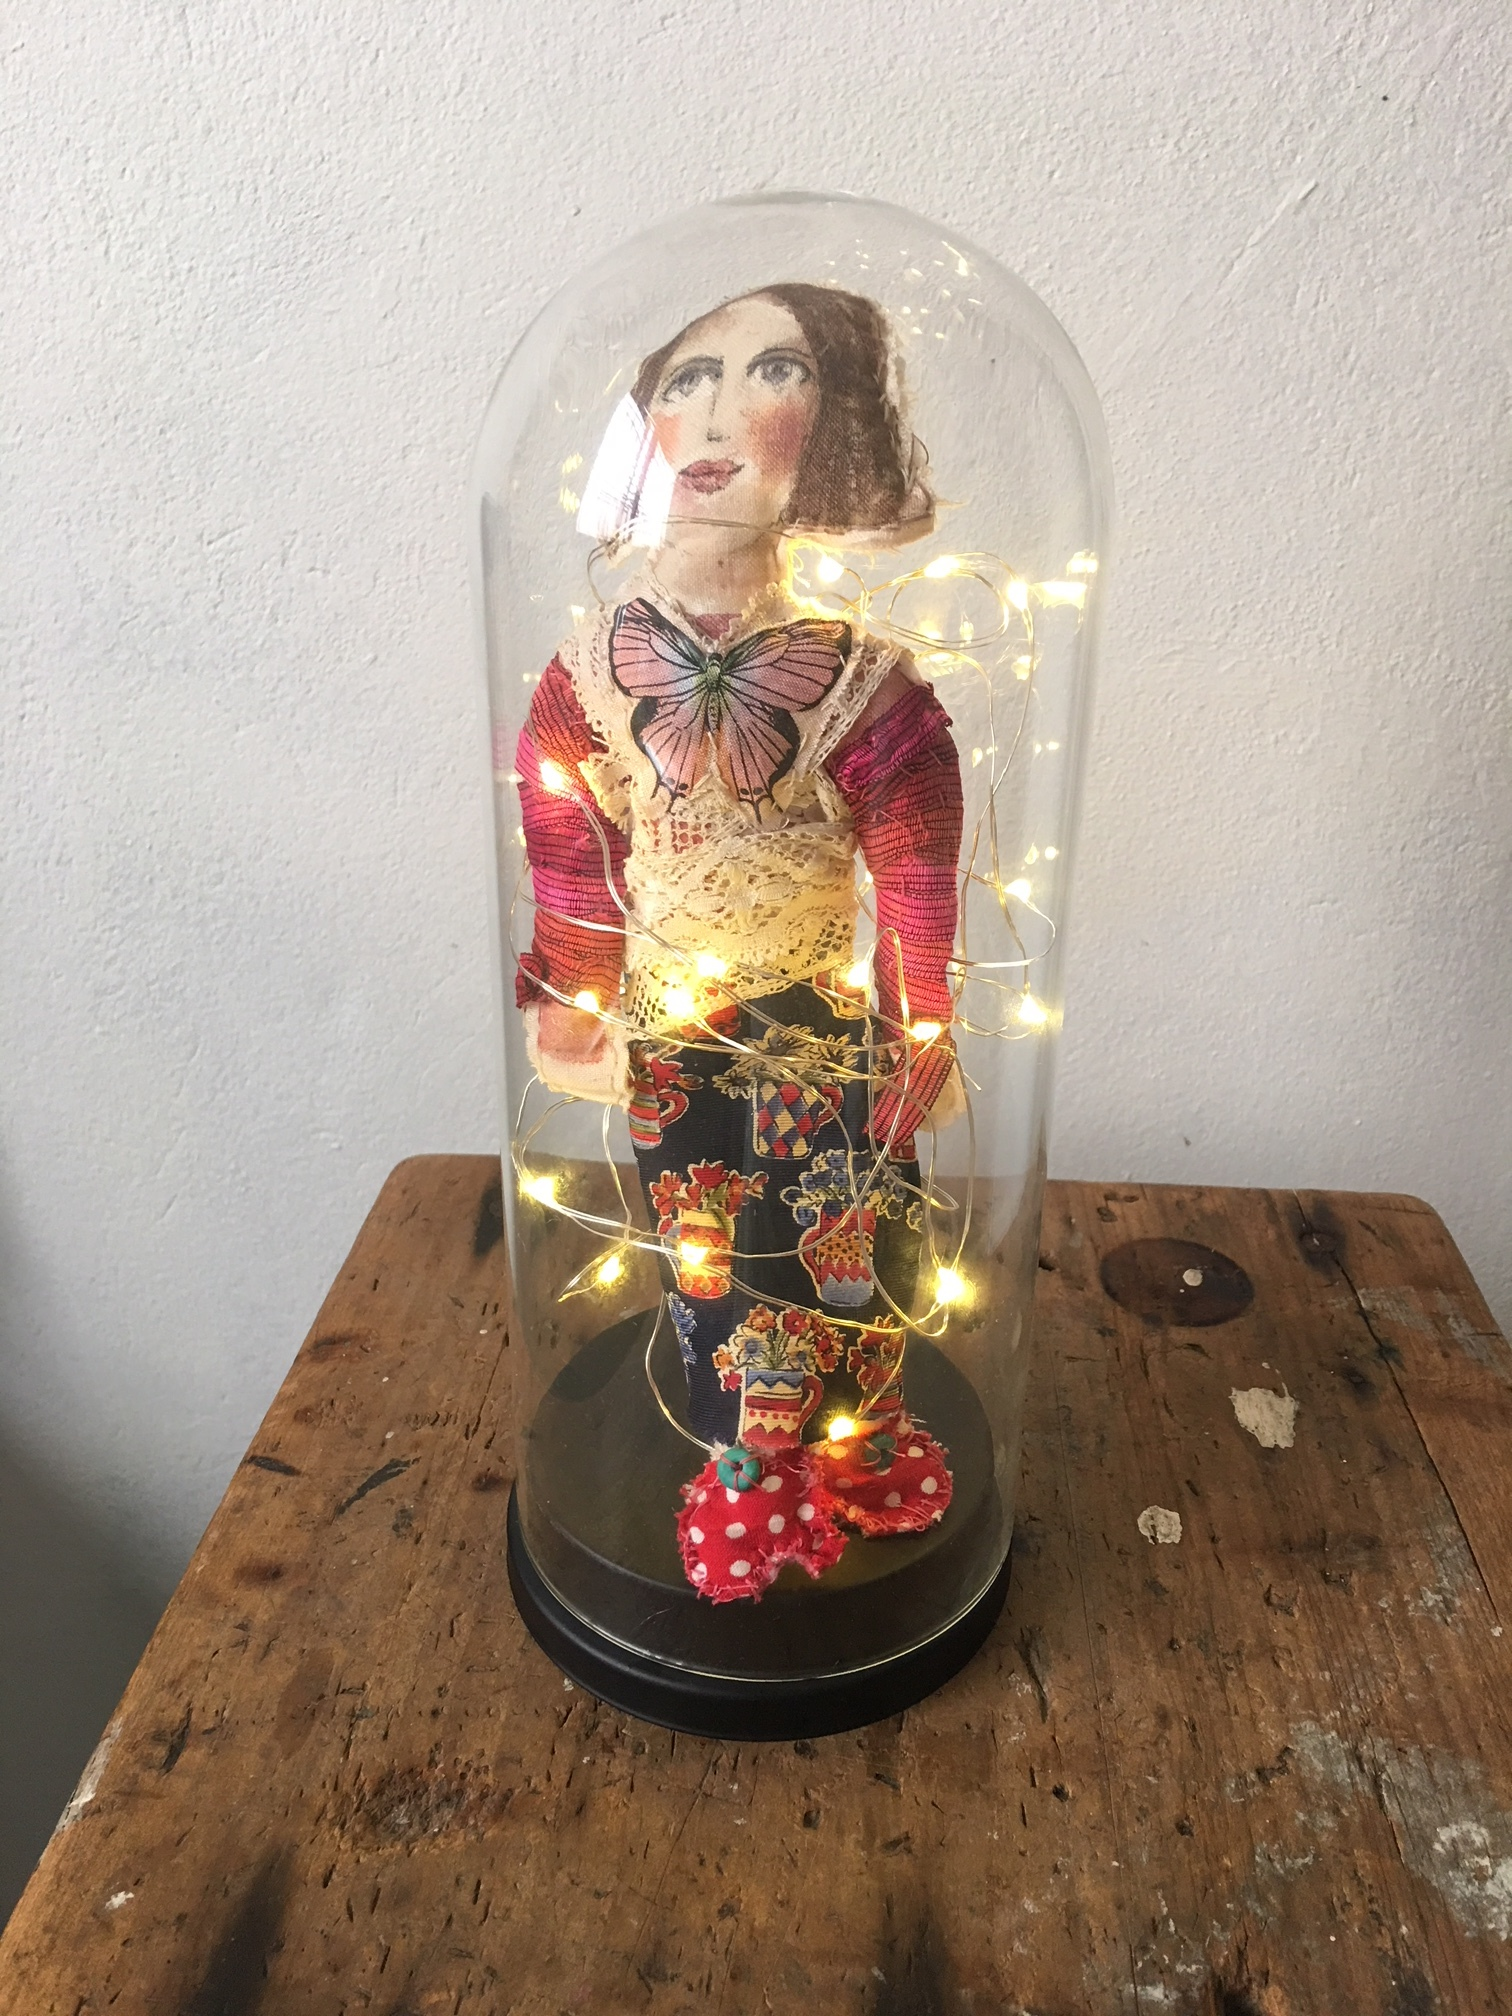 'Me' as a doll (in a jar)